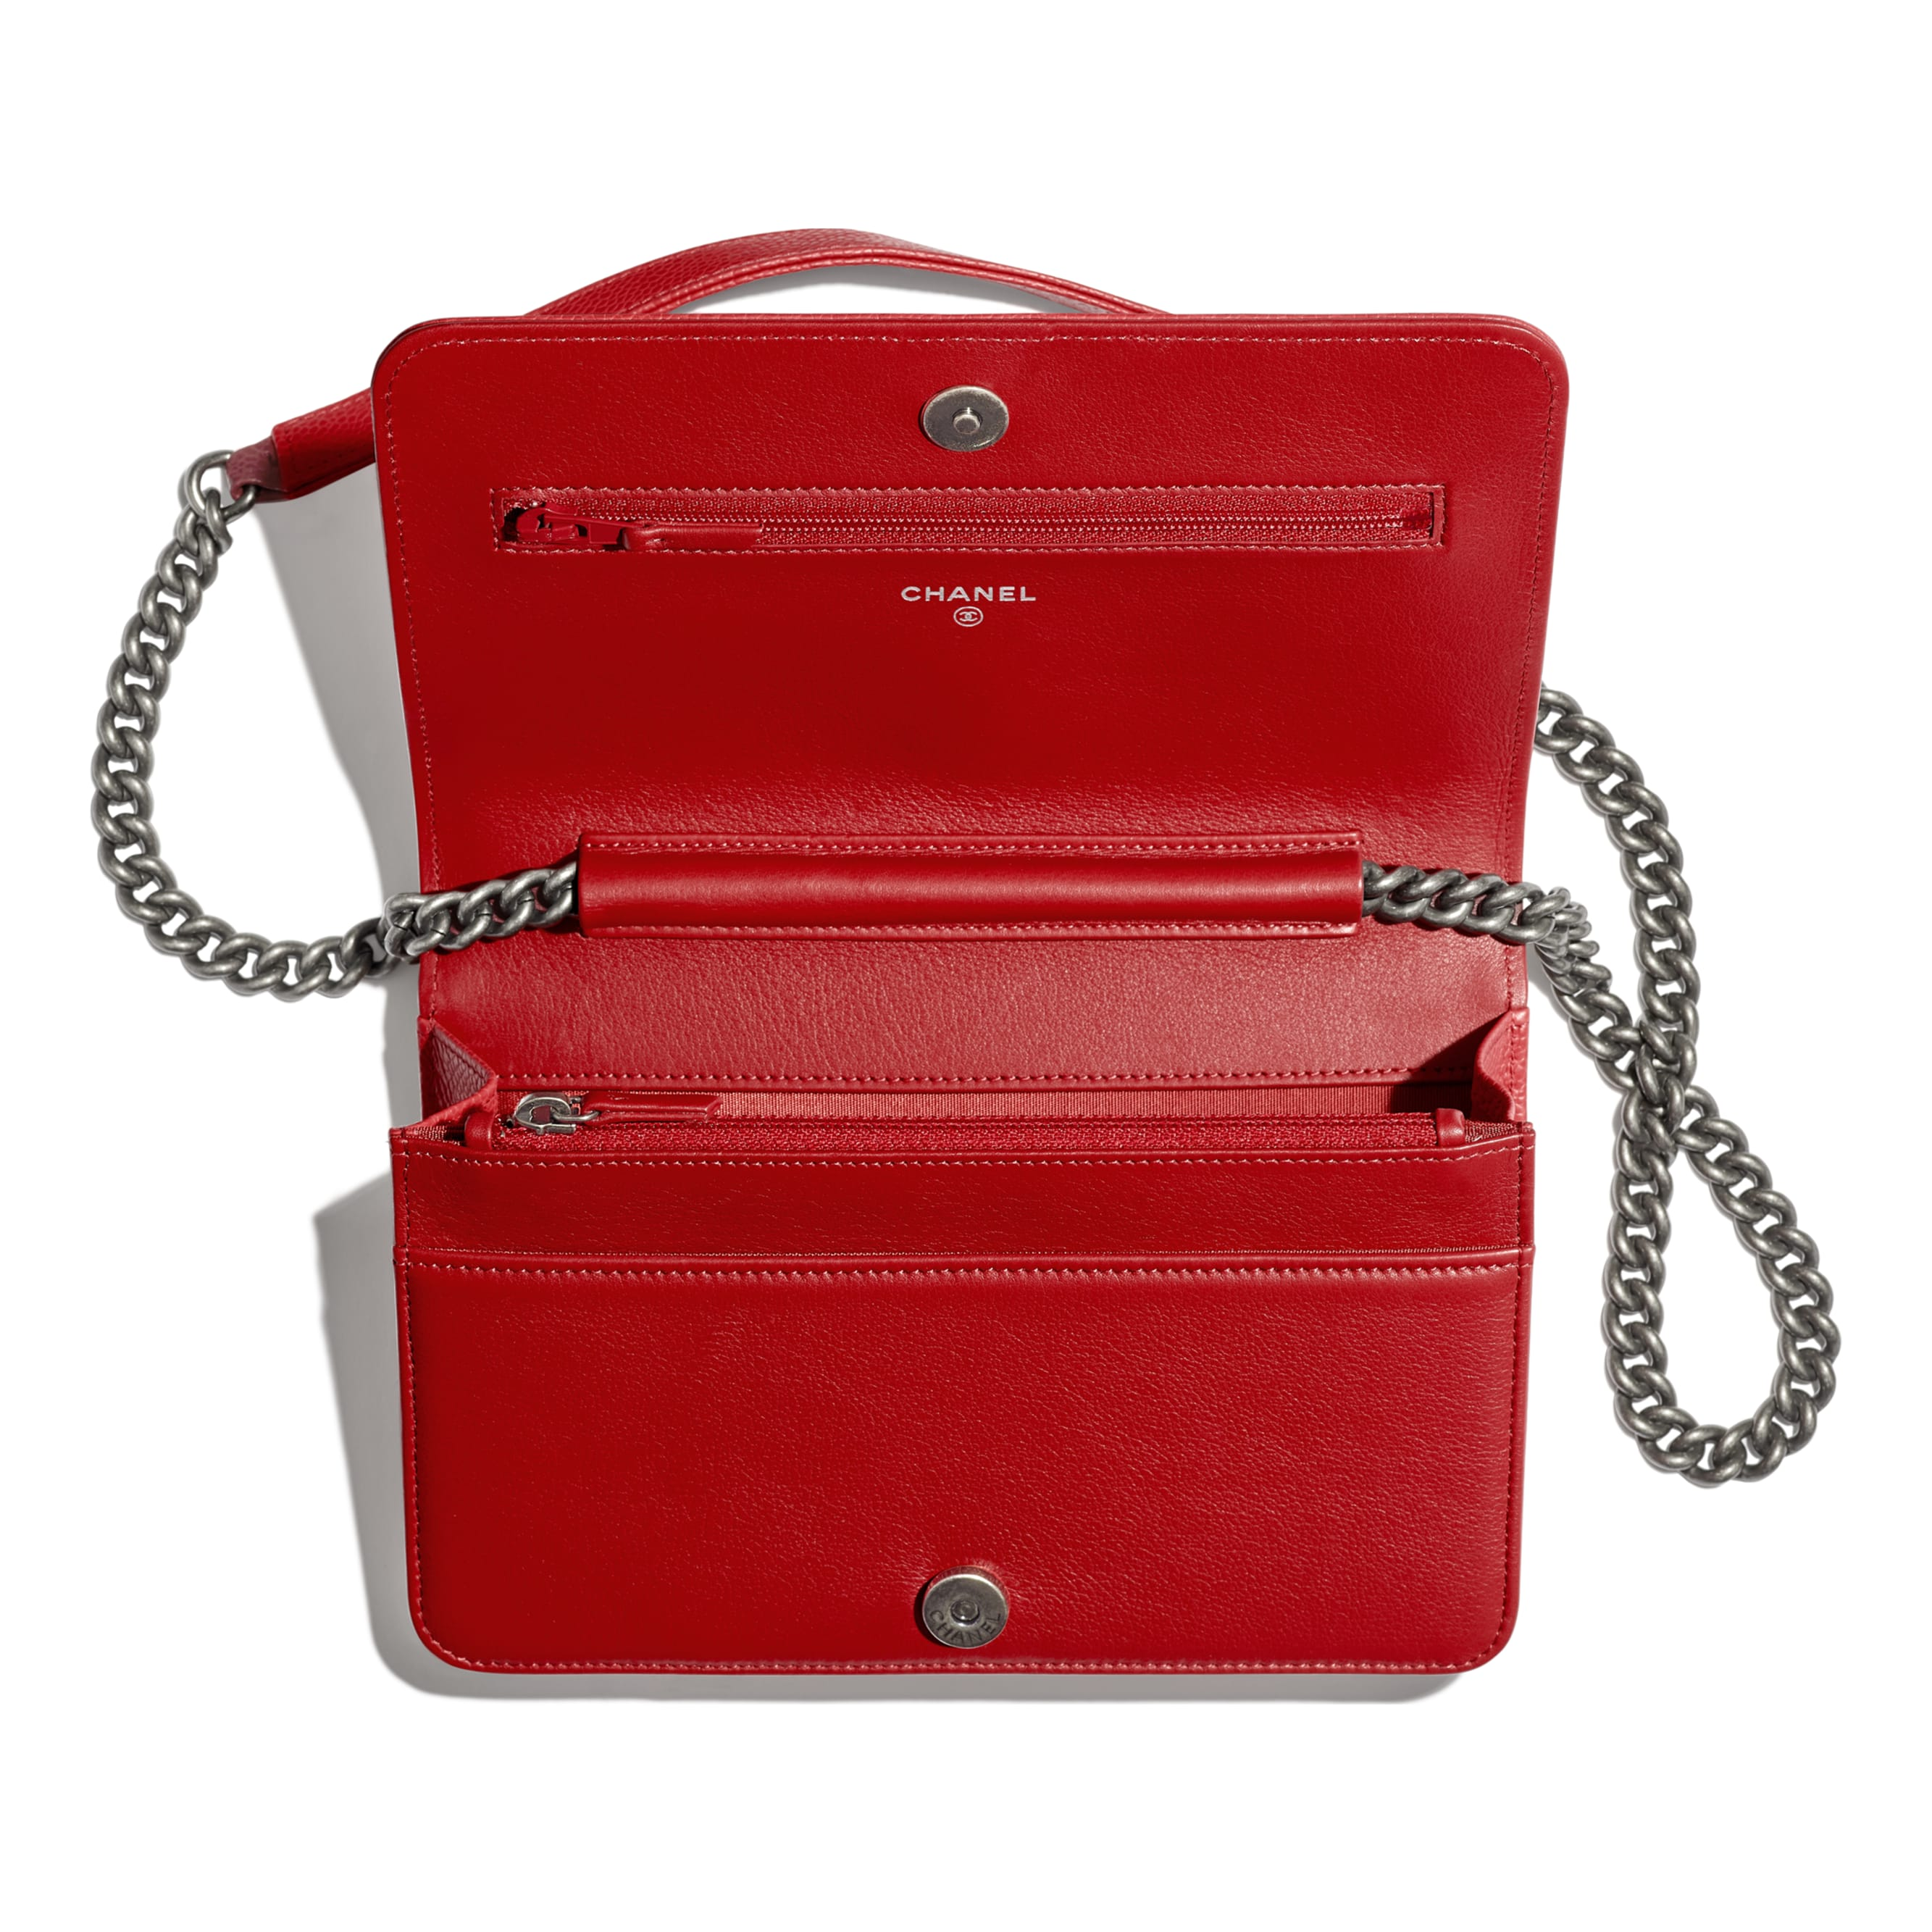 BOY CHANEL Wallet On Chain - Red - Grained Calfskin & Ruthenium-Finish Metal - CHANEL - Other view - see standard sized version